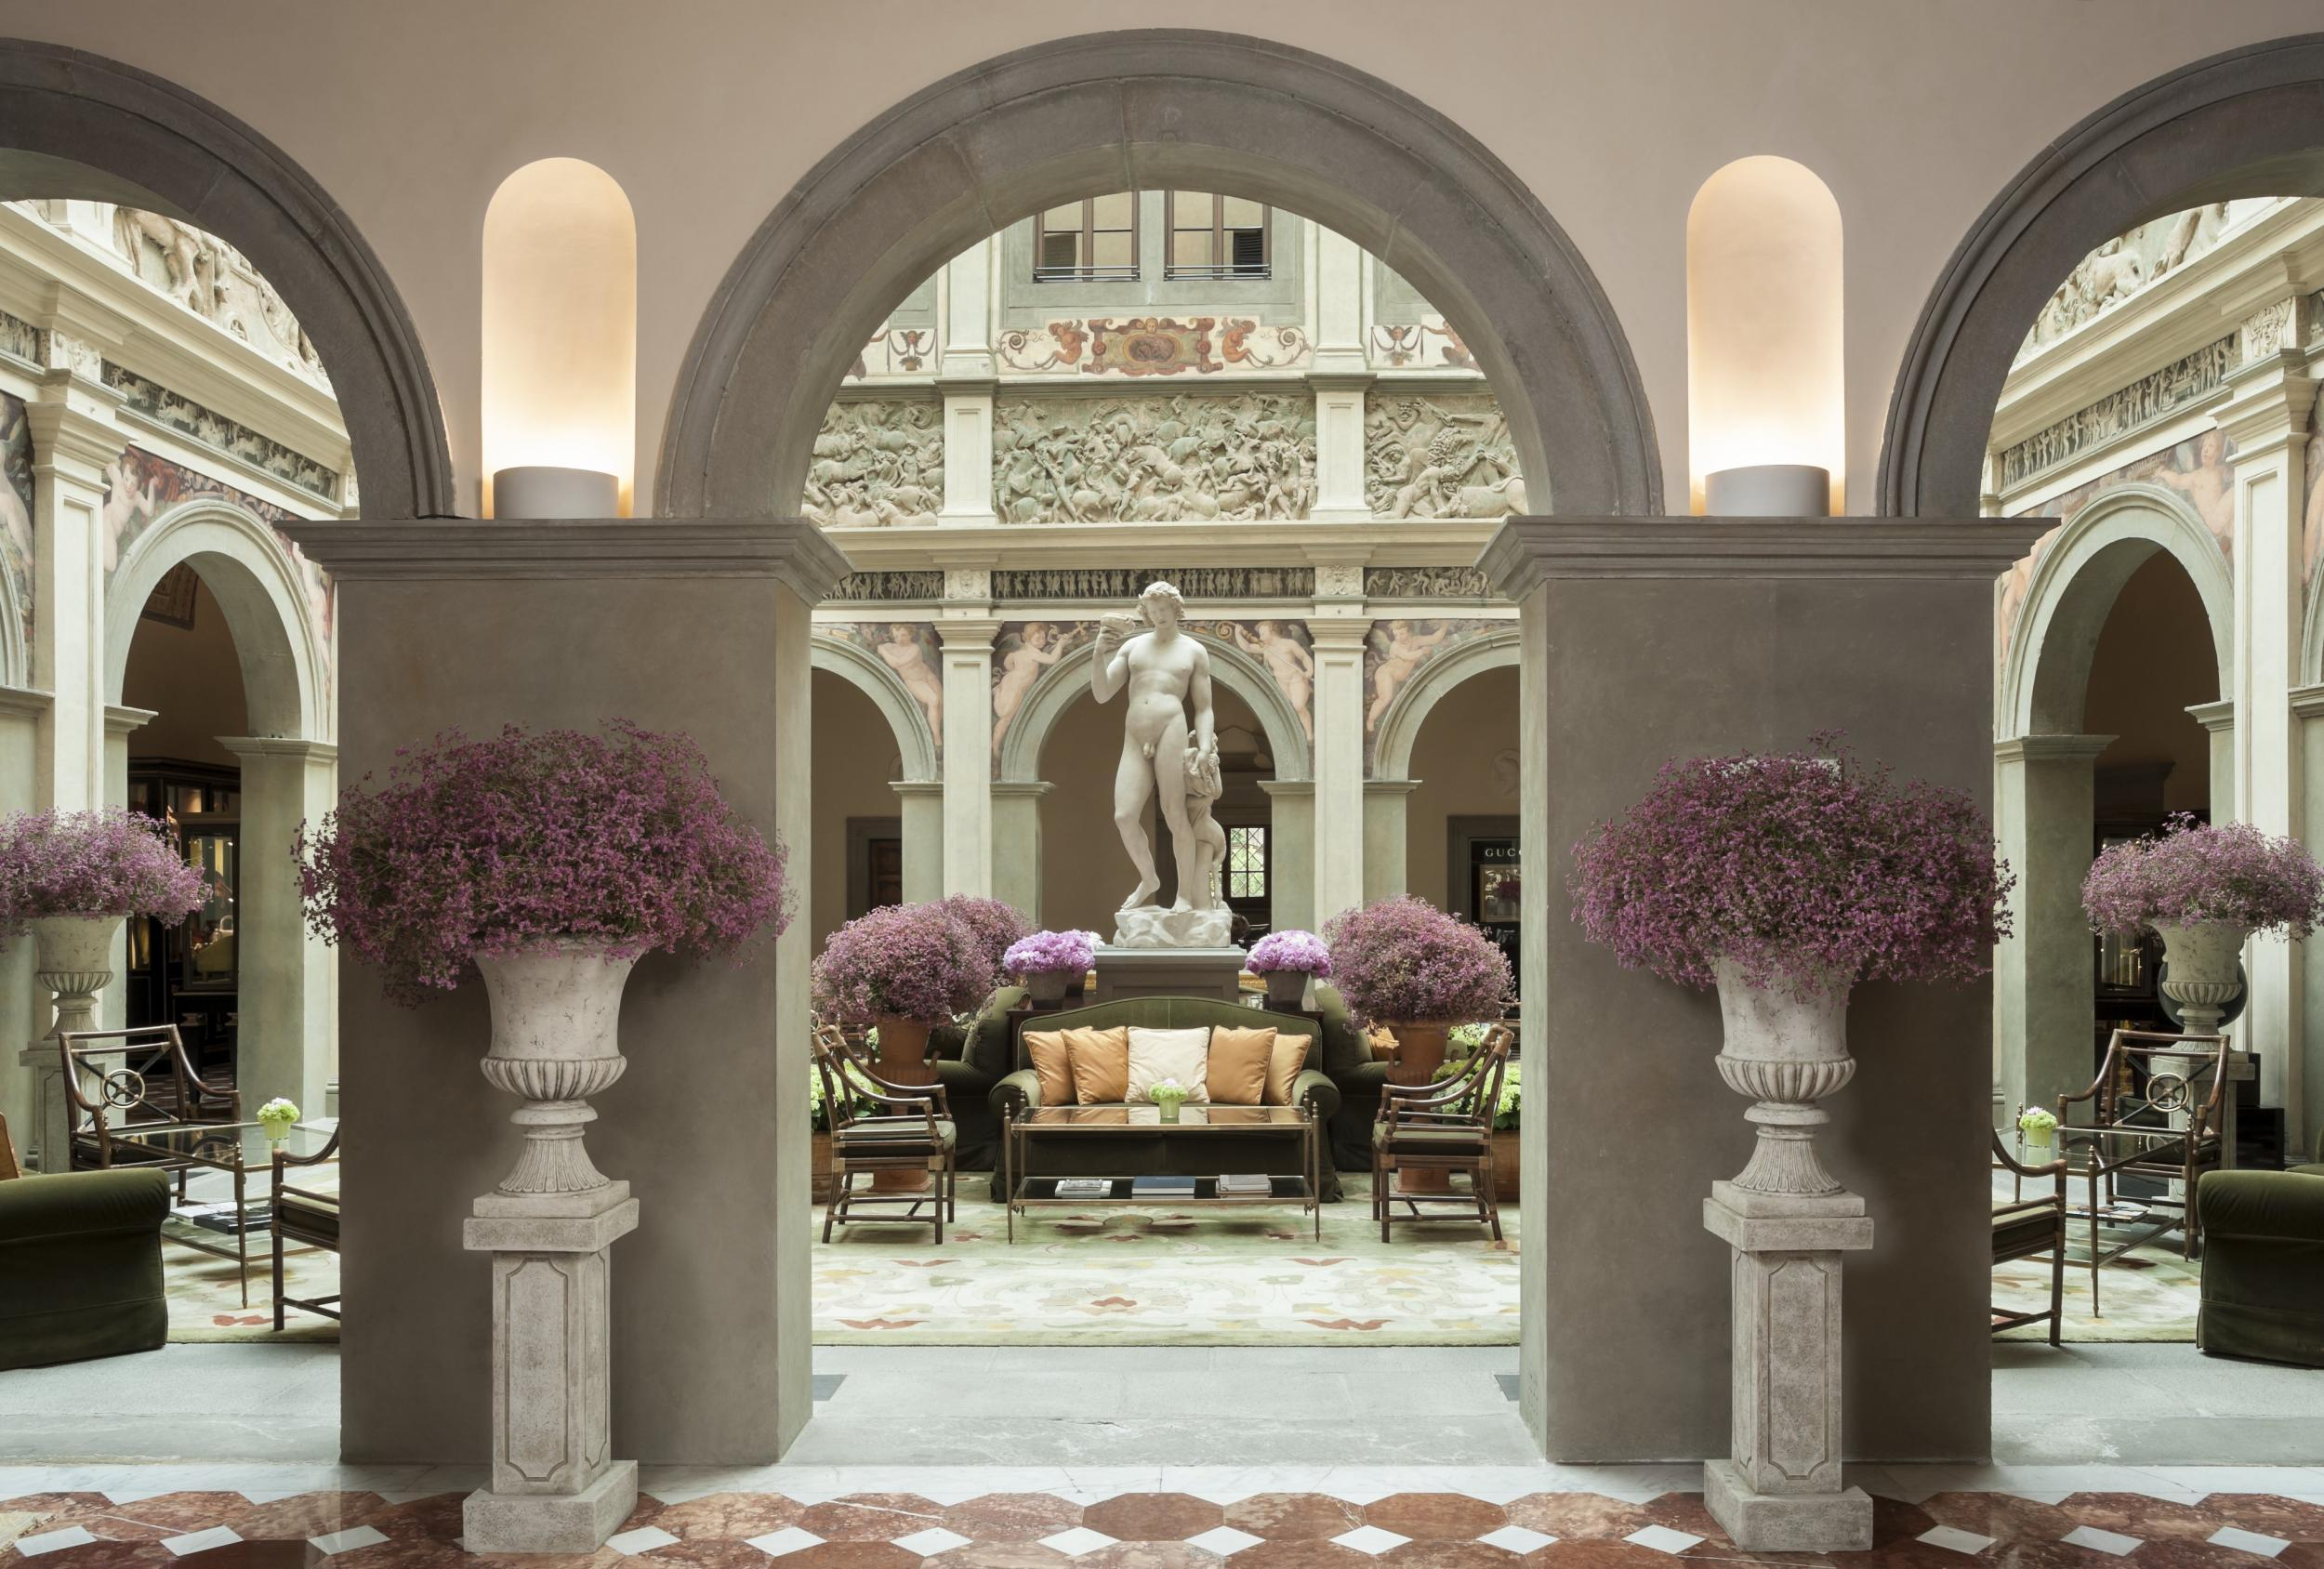 10 of the best hotels in Florence